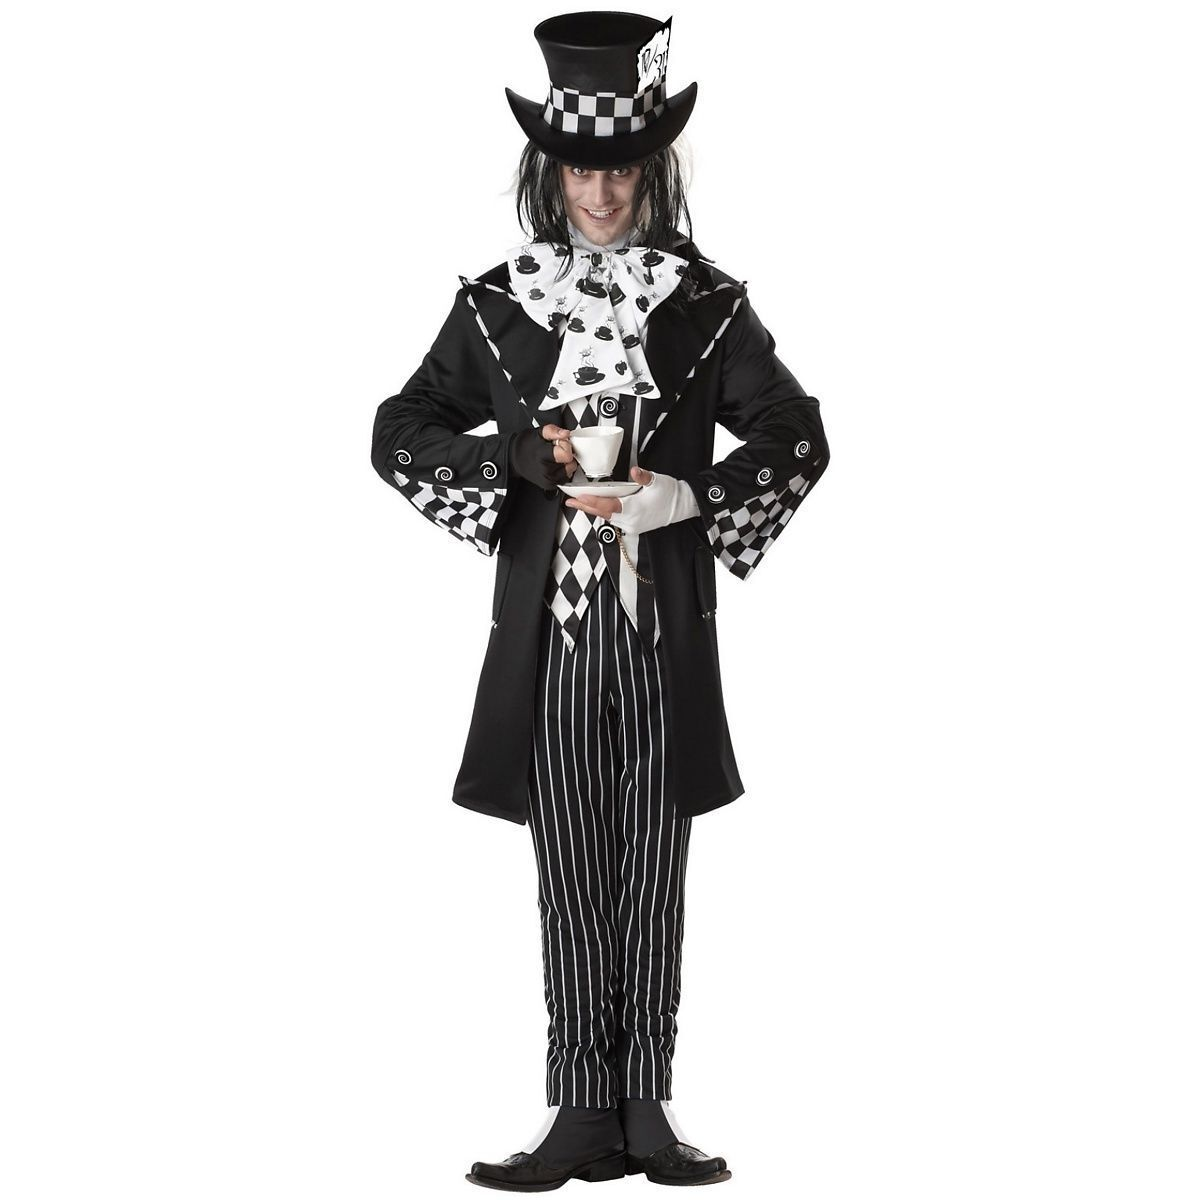 ADULT MENS DARK MAD HATTER SCARY SPOOKY HALLOWEEN COSTUME